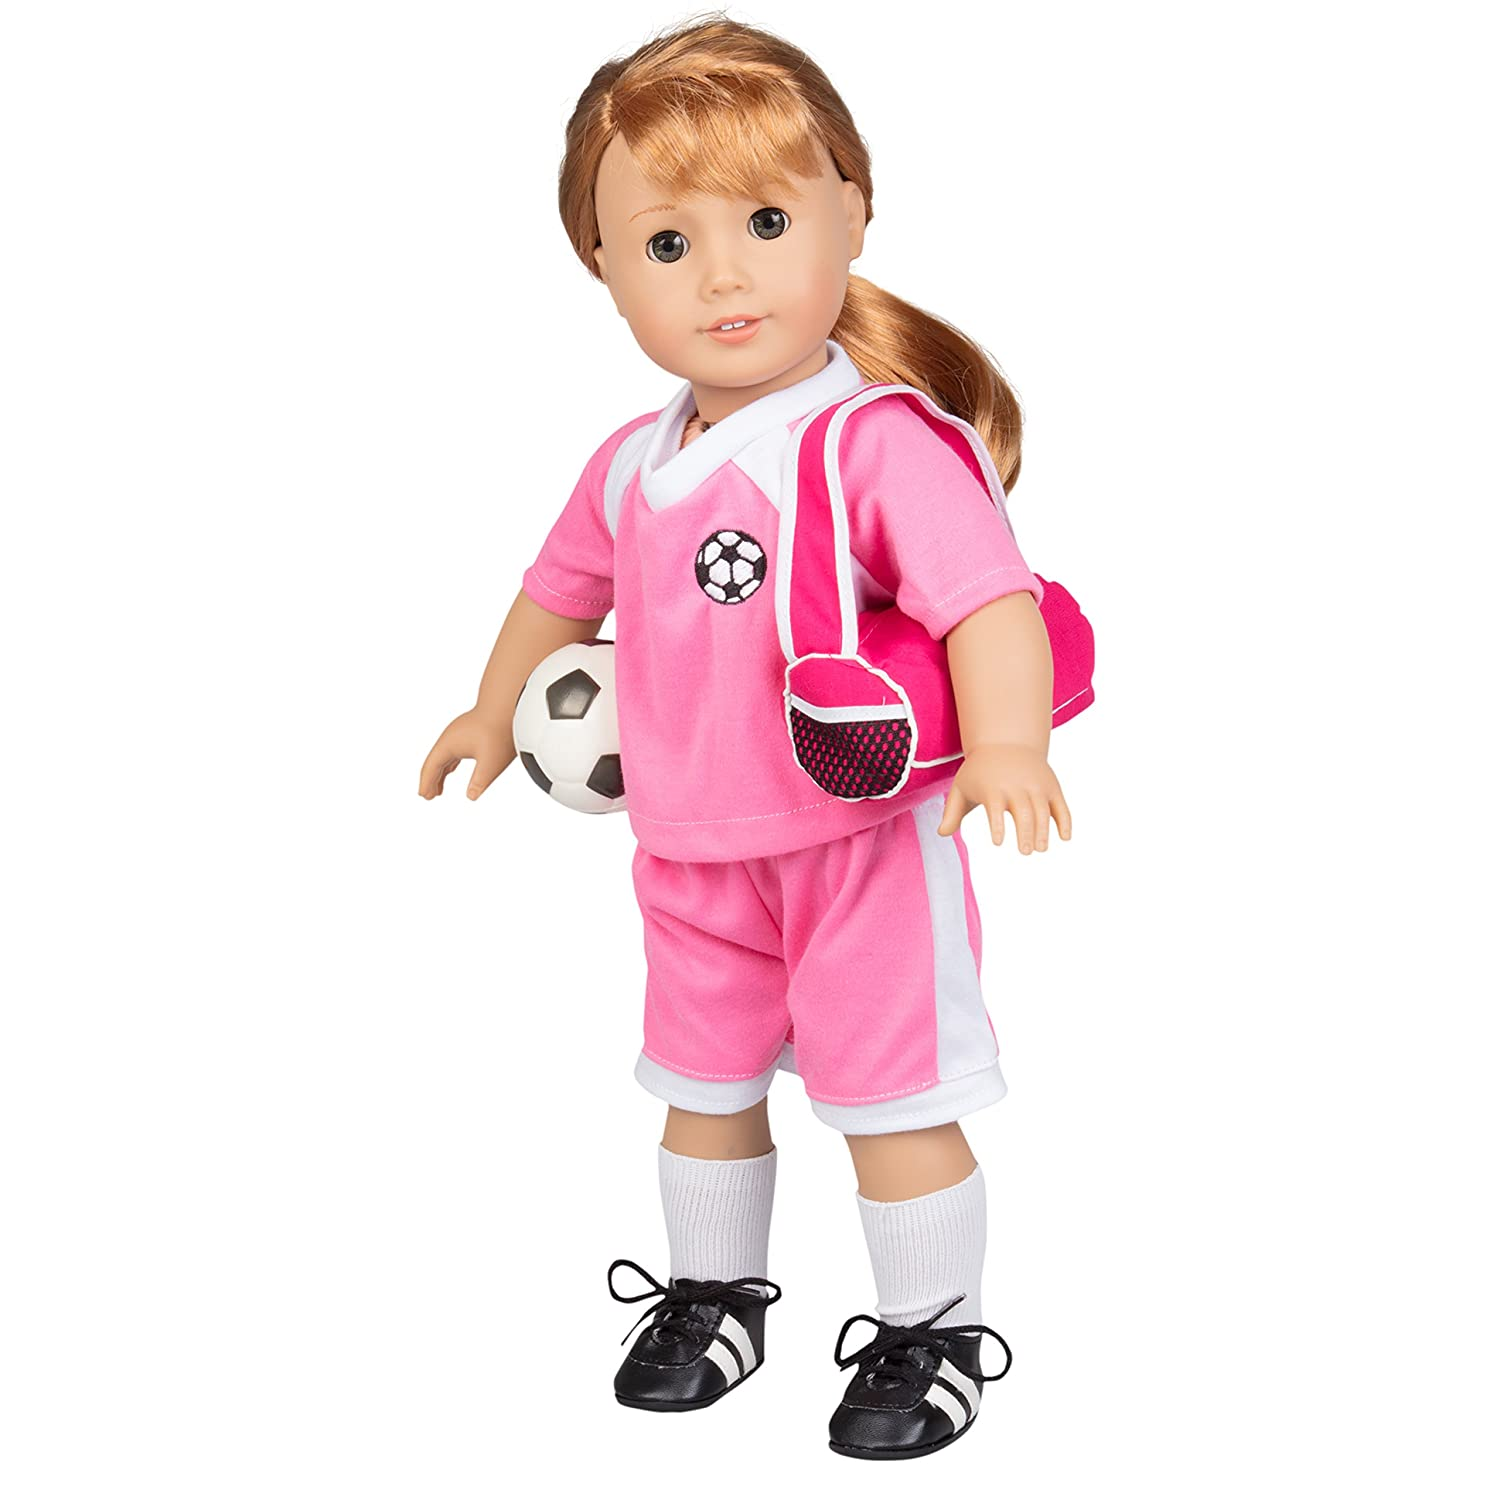 Sports Bag and Ball Socks Dress Along Dolly Soccer Outfit for American Girl and 18 Dolls Cleats Shirt 6 pc Clothes Set w Shorts